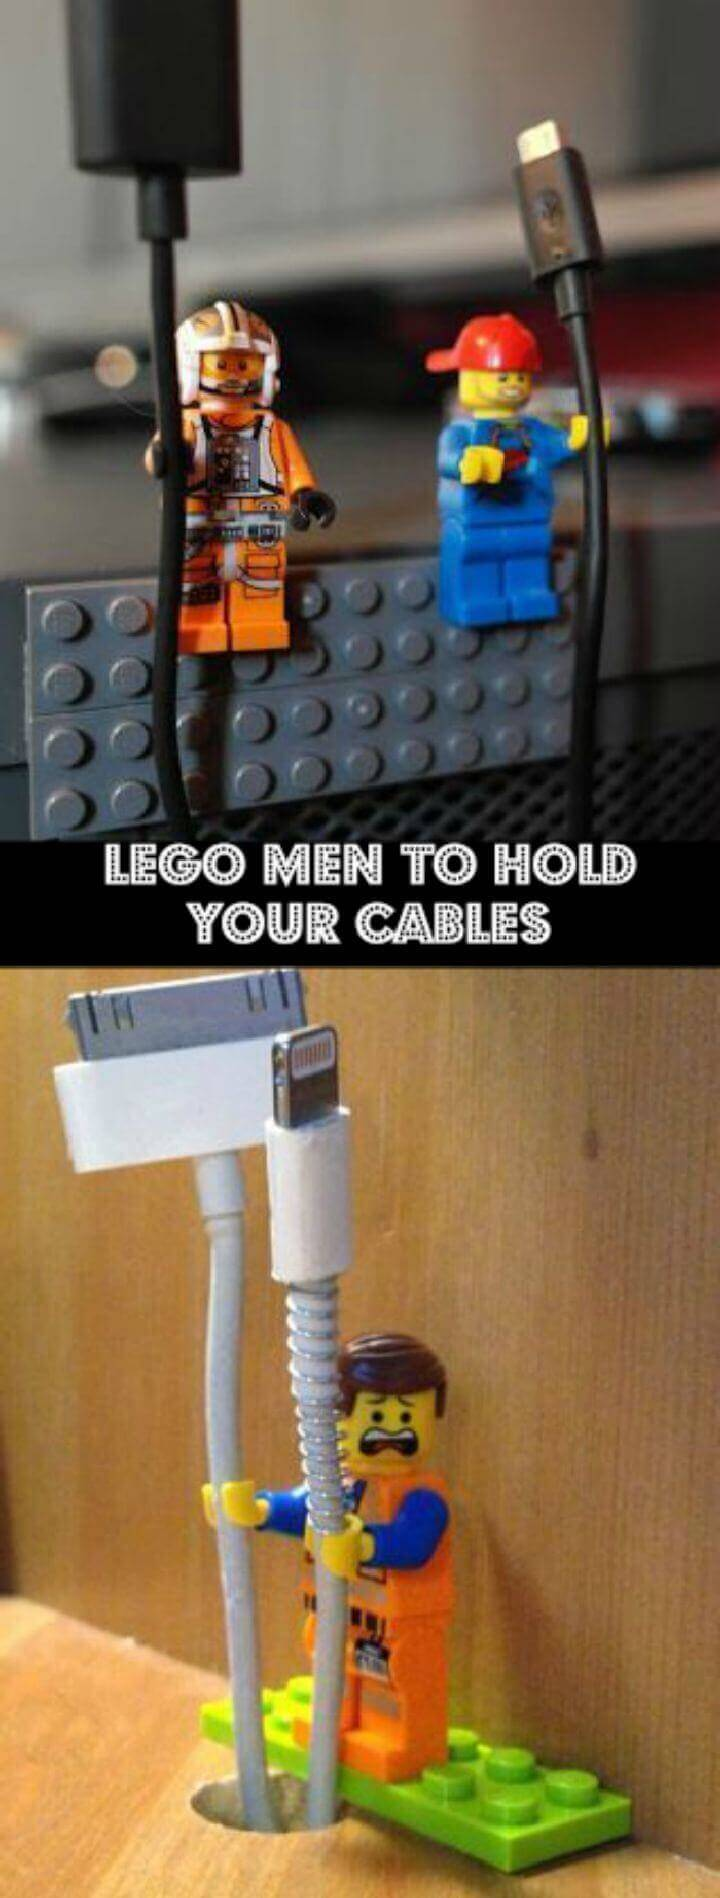 Lego men to hold your cables